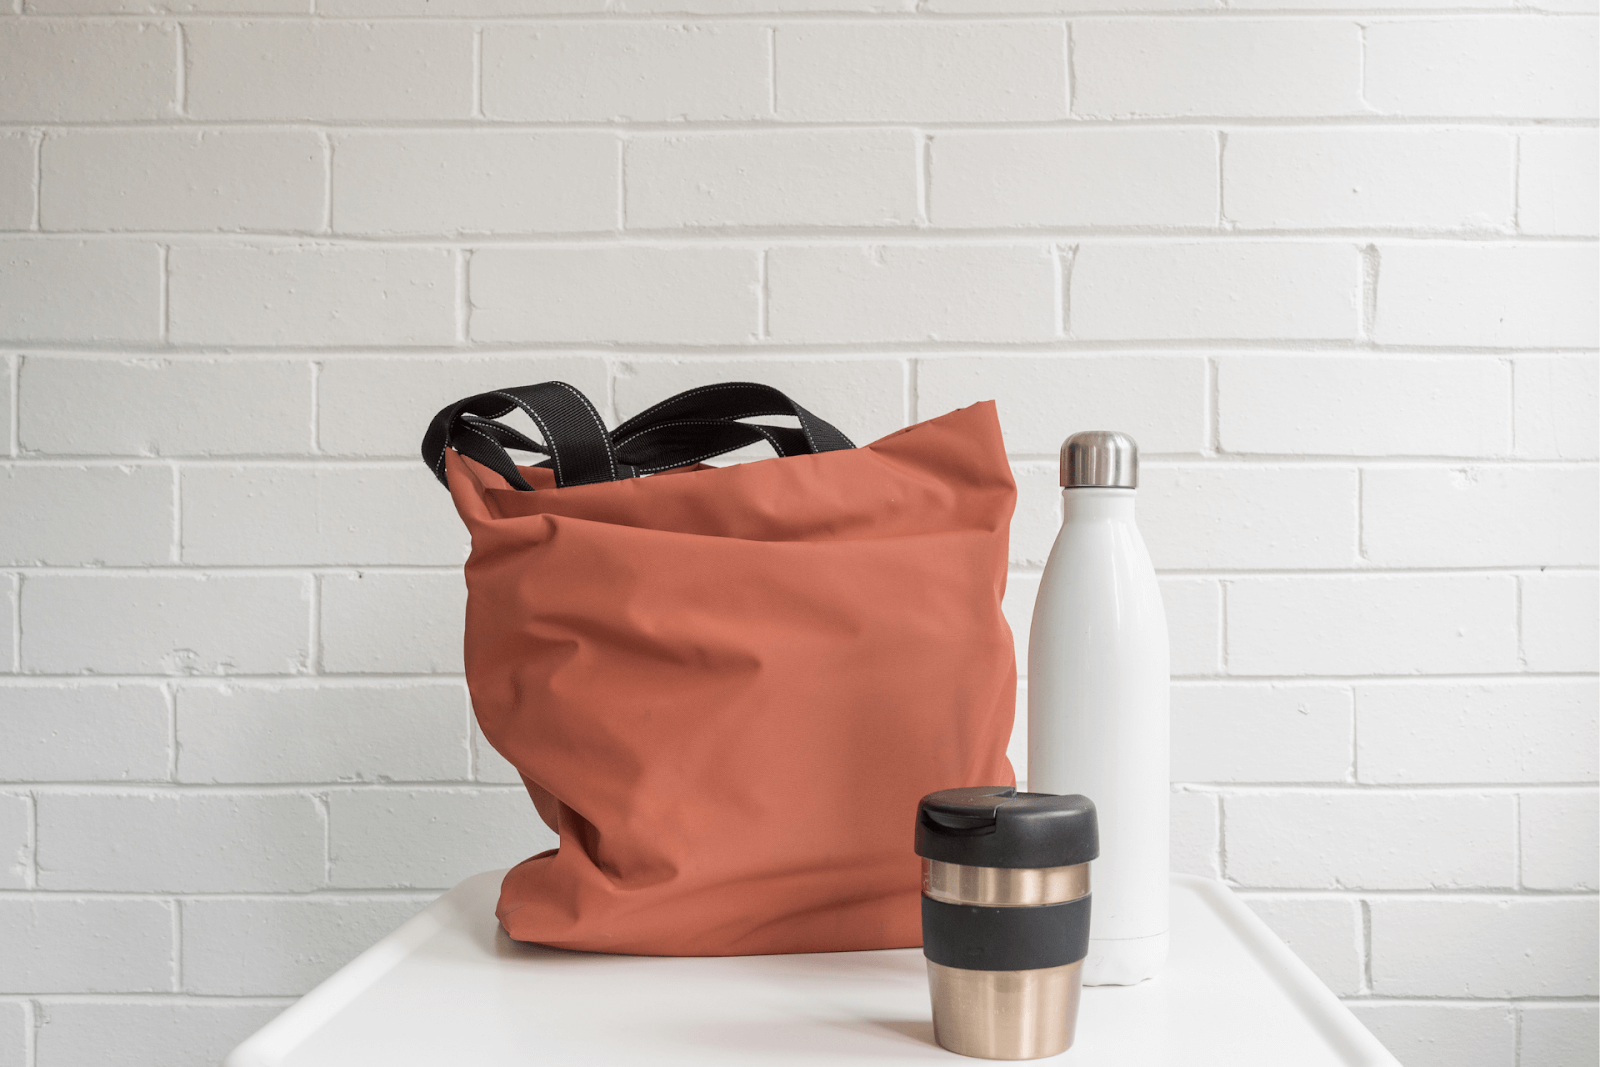 A reusable bag, water bottle, and mug at an office